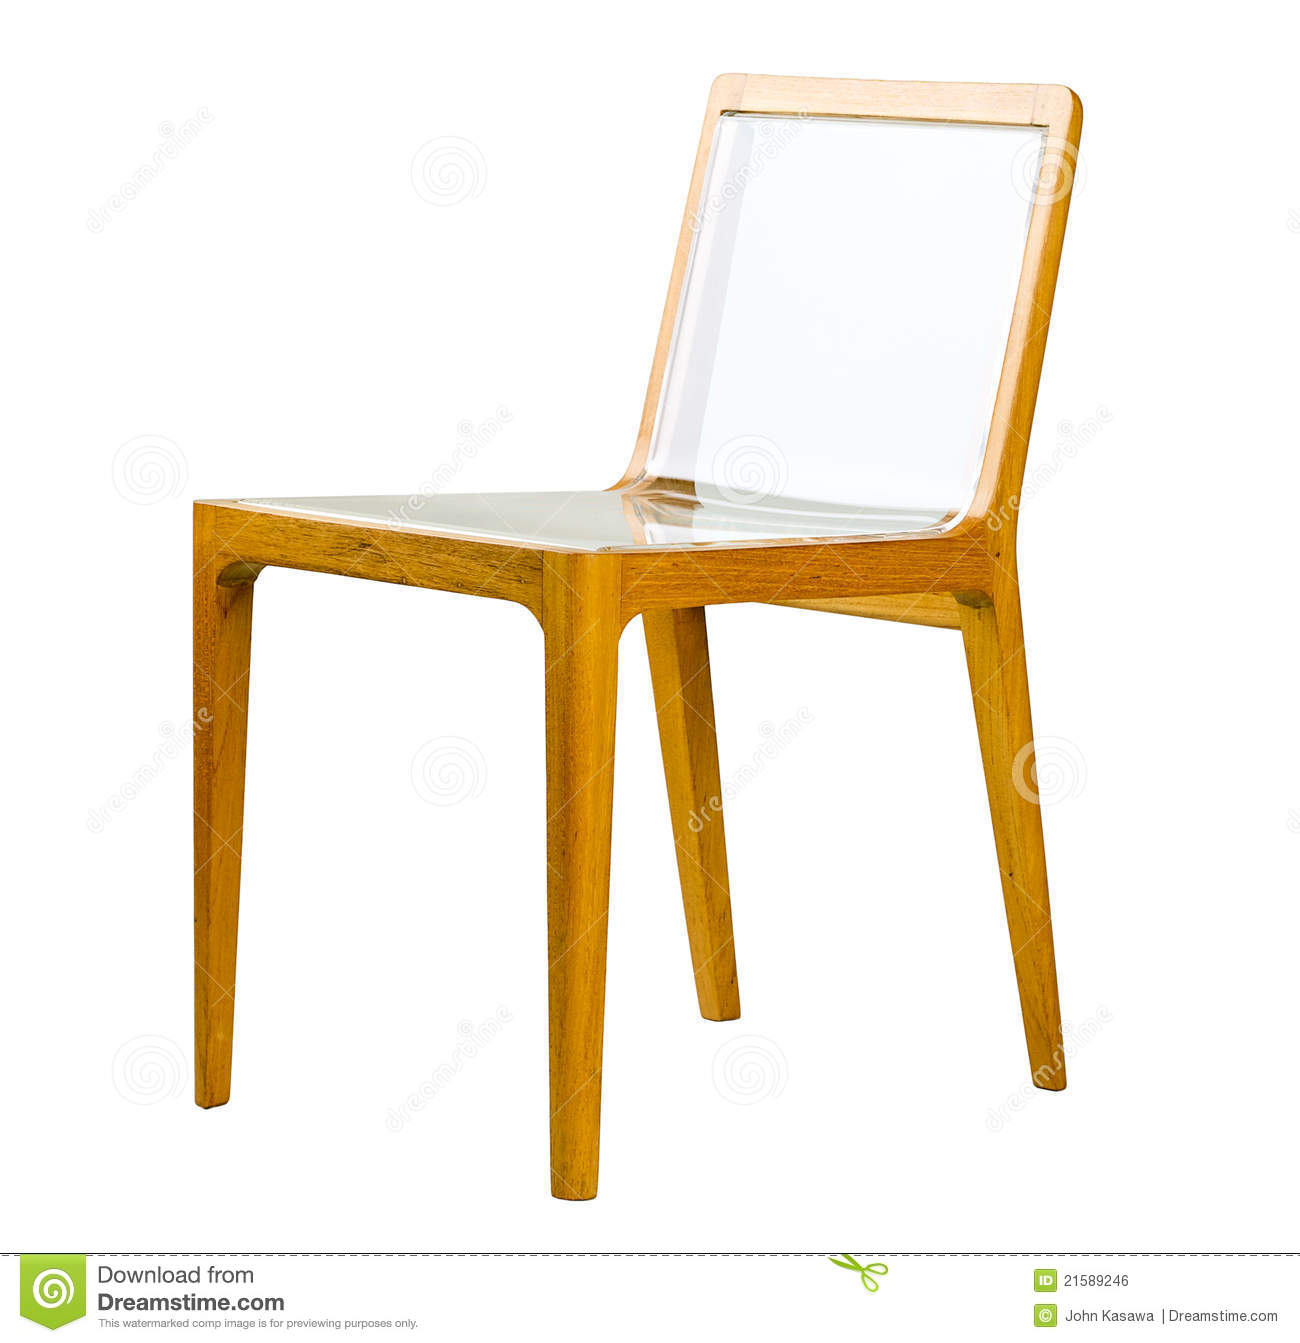 Awe Inspiring Acrylic Wooden Chair Stock Photo Image Of Handmade Sitting Machost Co Dining Chair Design Ideas Machostcouk